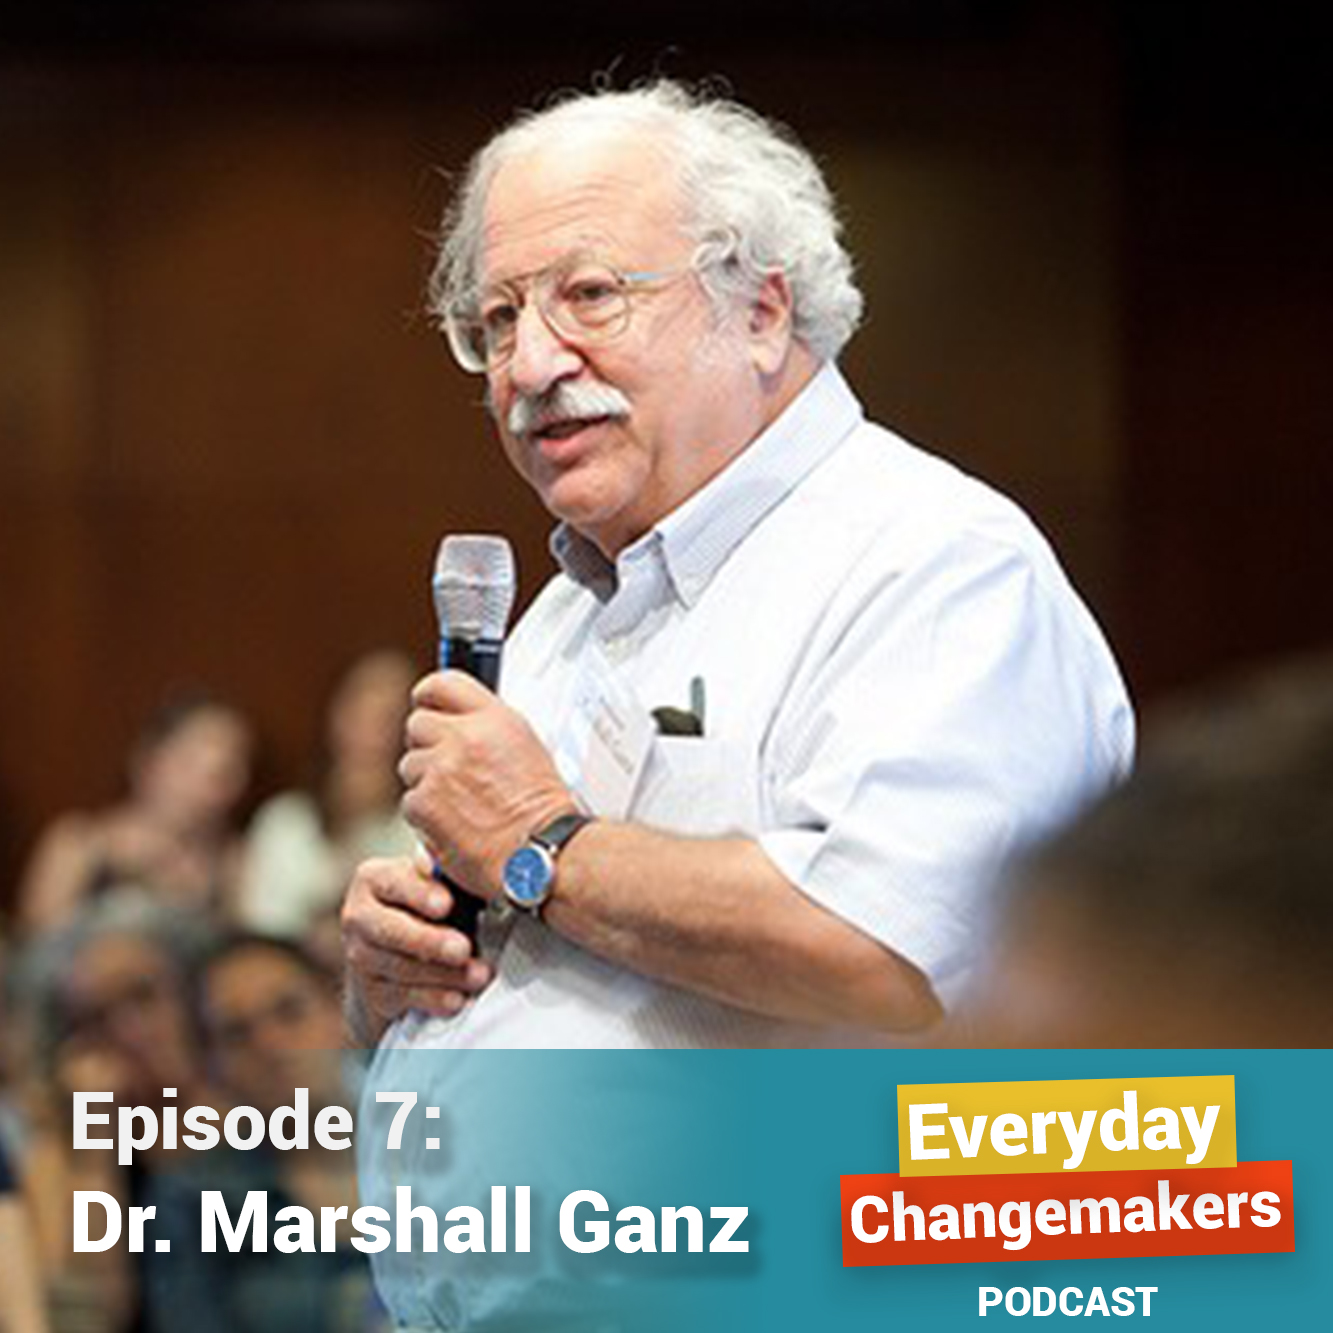 On Courage, Sources of Hope, and Practicing Leadership - Dr. Marshall Ganz is now a senior lecturer in public policy at Harvard University. But he spent almost 30 years as an organizer with the Civil Rights Movement, United Farmworkers Movement, and more.When Marshall joined the Mississippi Summer Project in 1964, he faced a powerful turning point that called him to find his own courage. We talk about uncovering the hope you need to turn threats into challenges, and about the ongoing practice of leadership, which Marshall defines as: